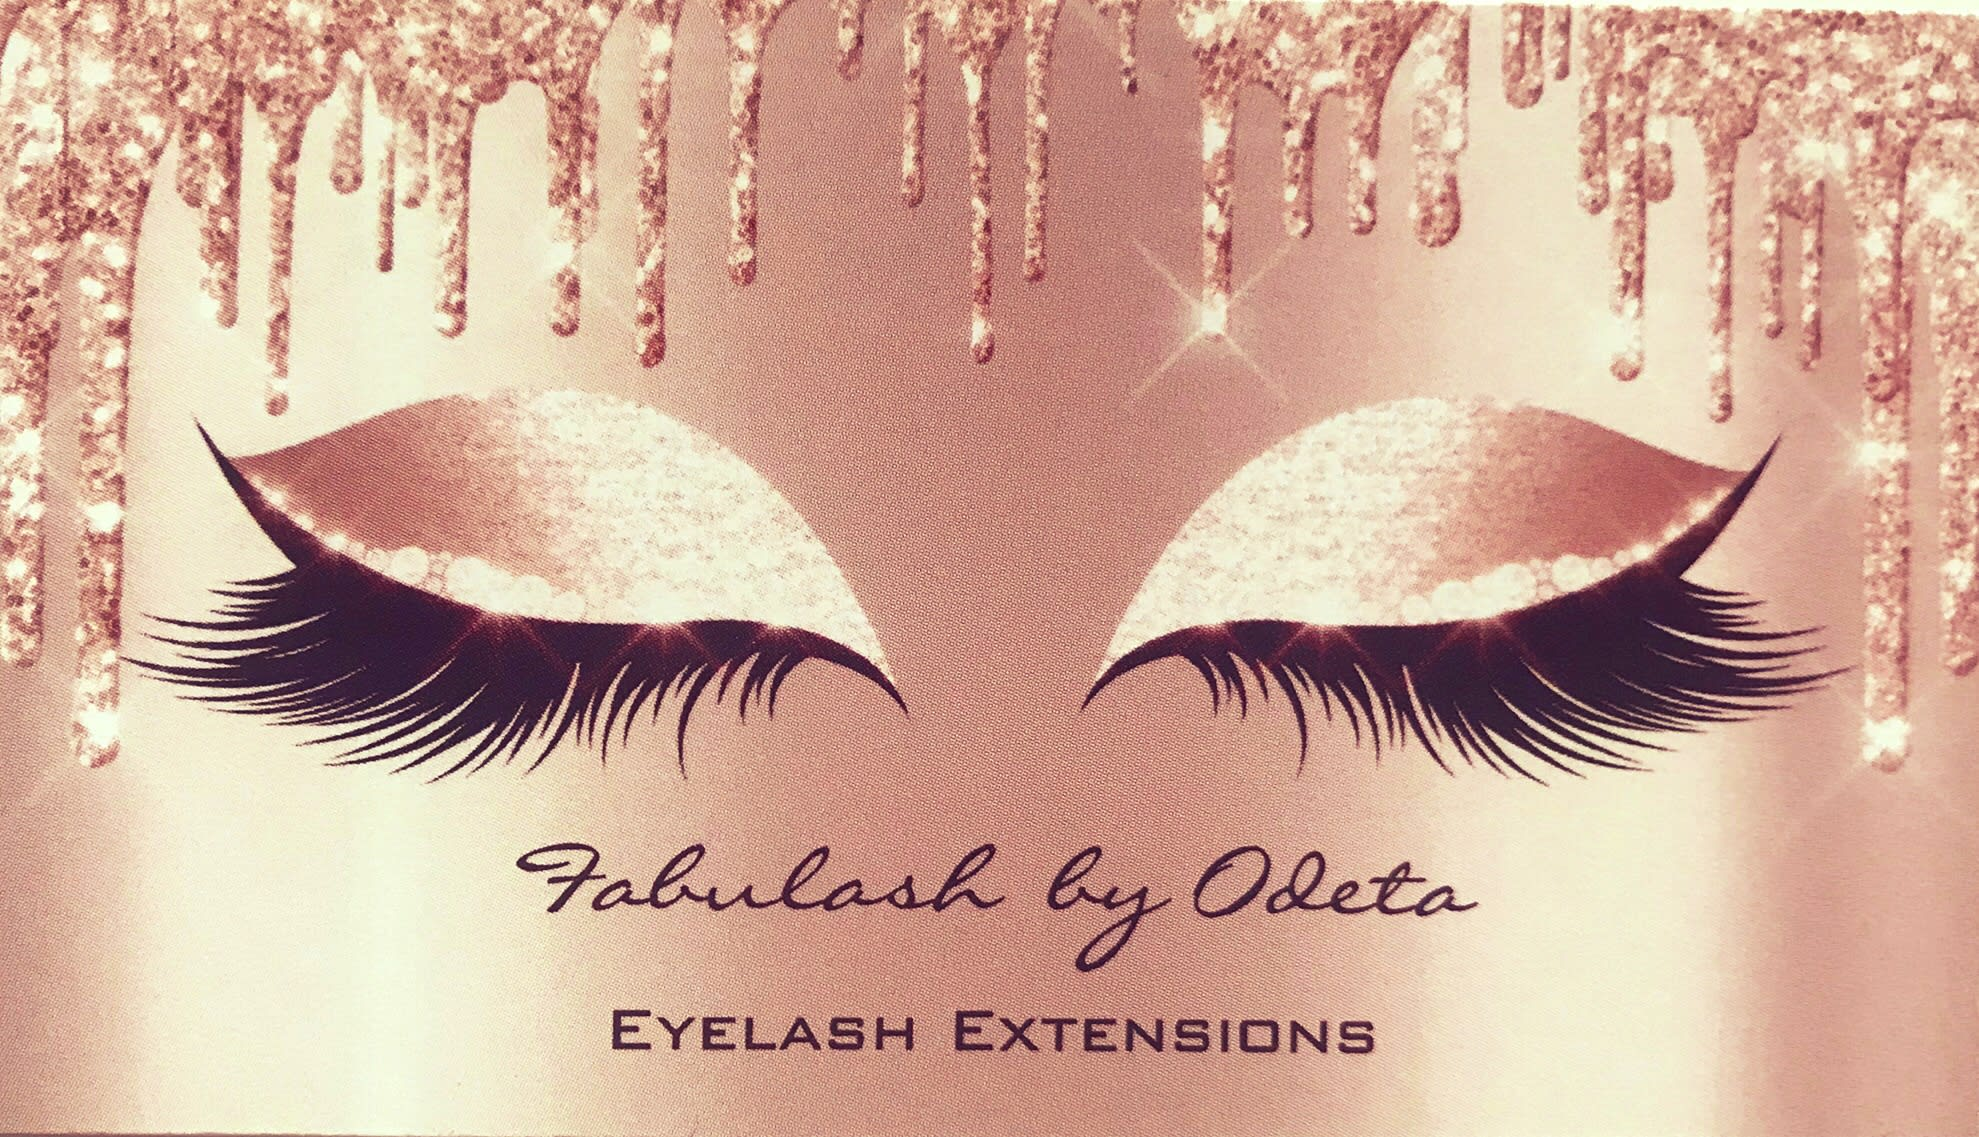 Fabulash By Odeta